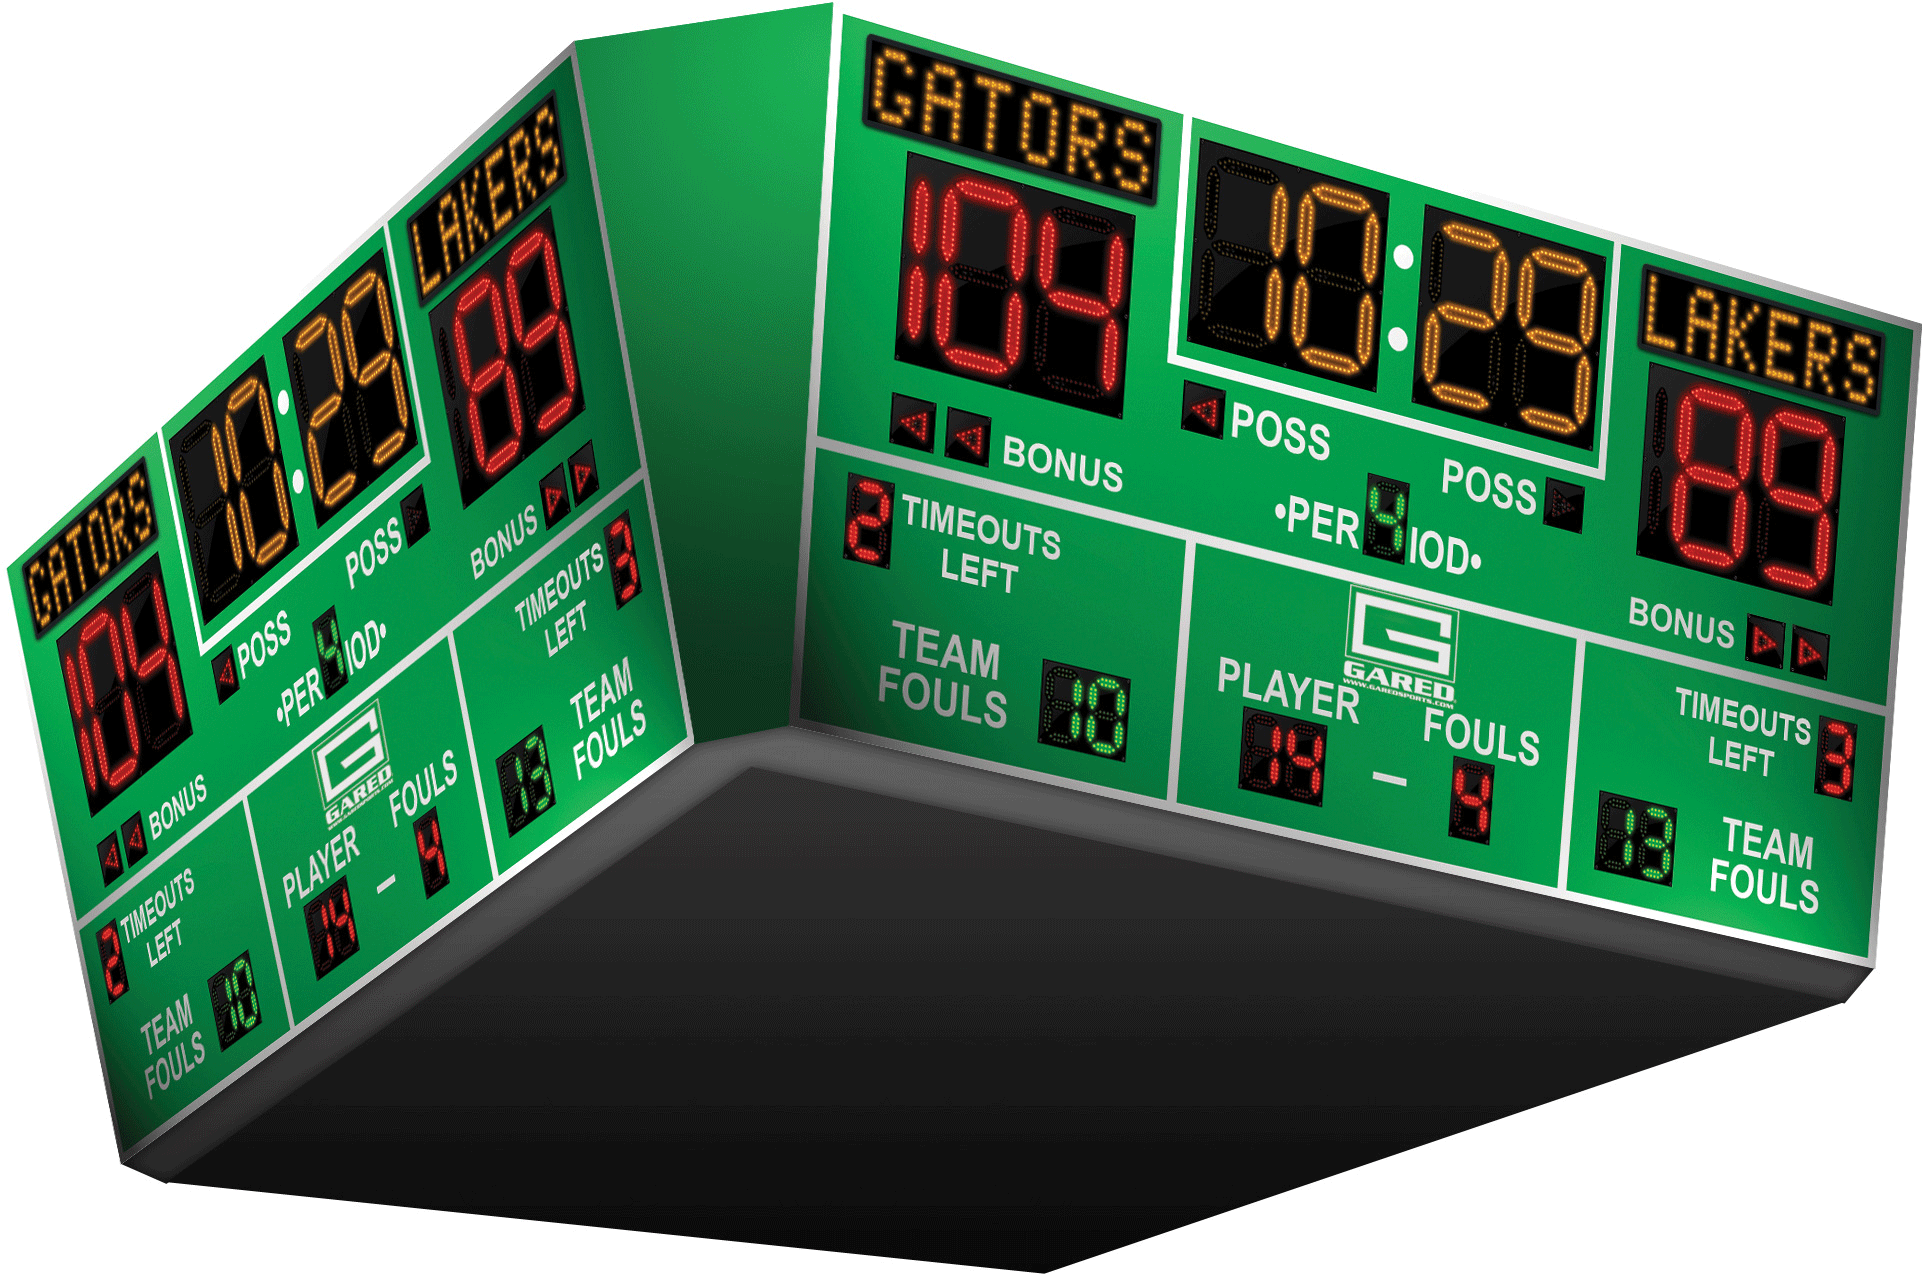 scoreboard basketball arena scoreboards sided four sports number gs alphatec gymnasium systems equipment main